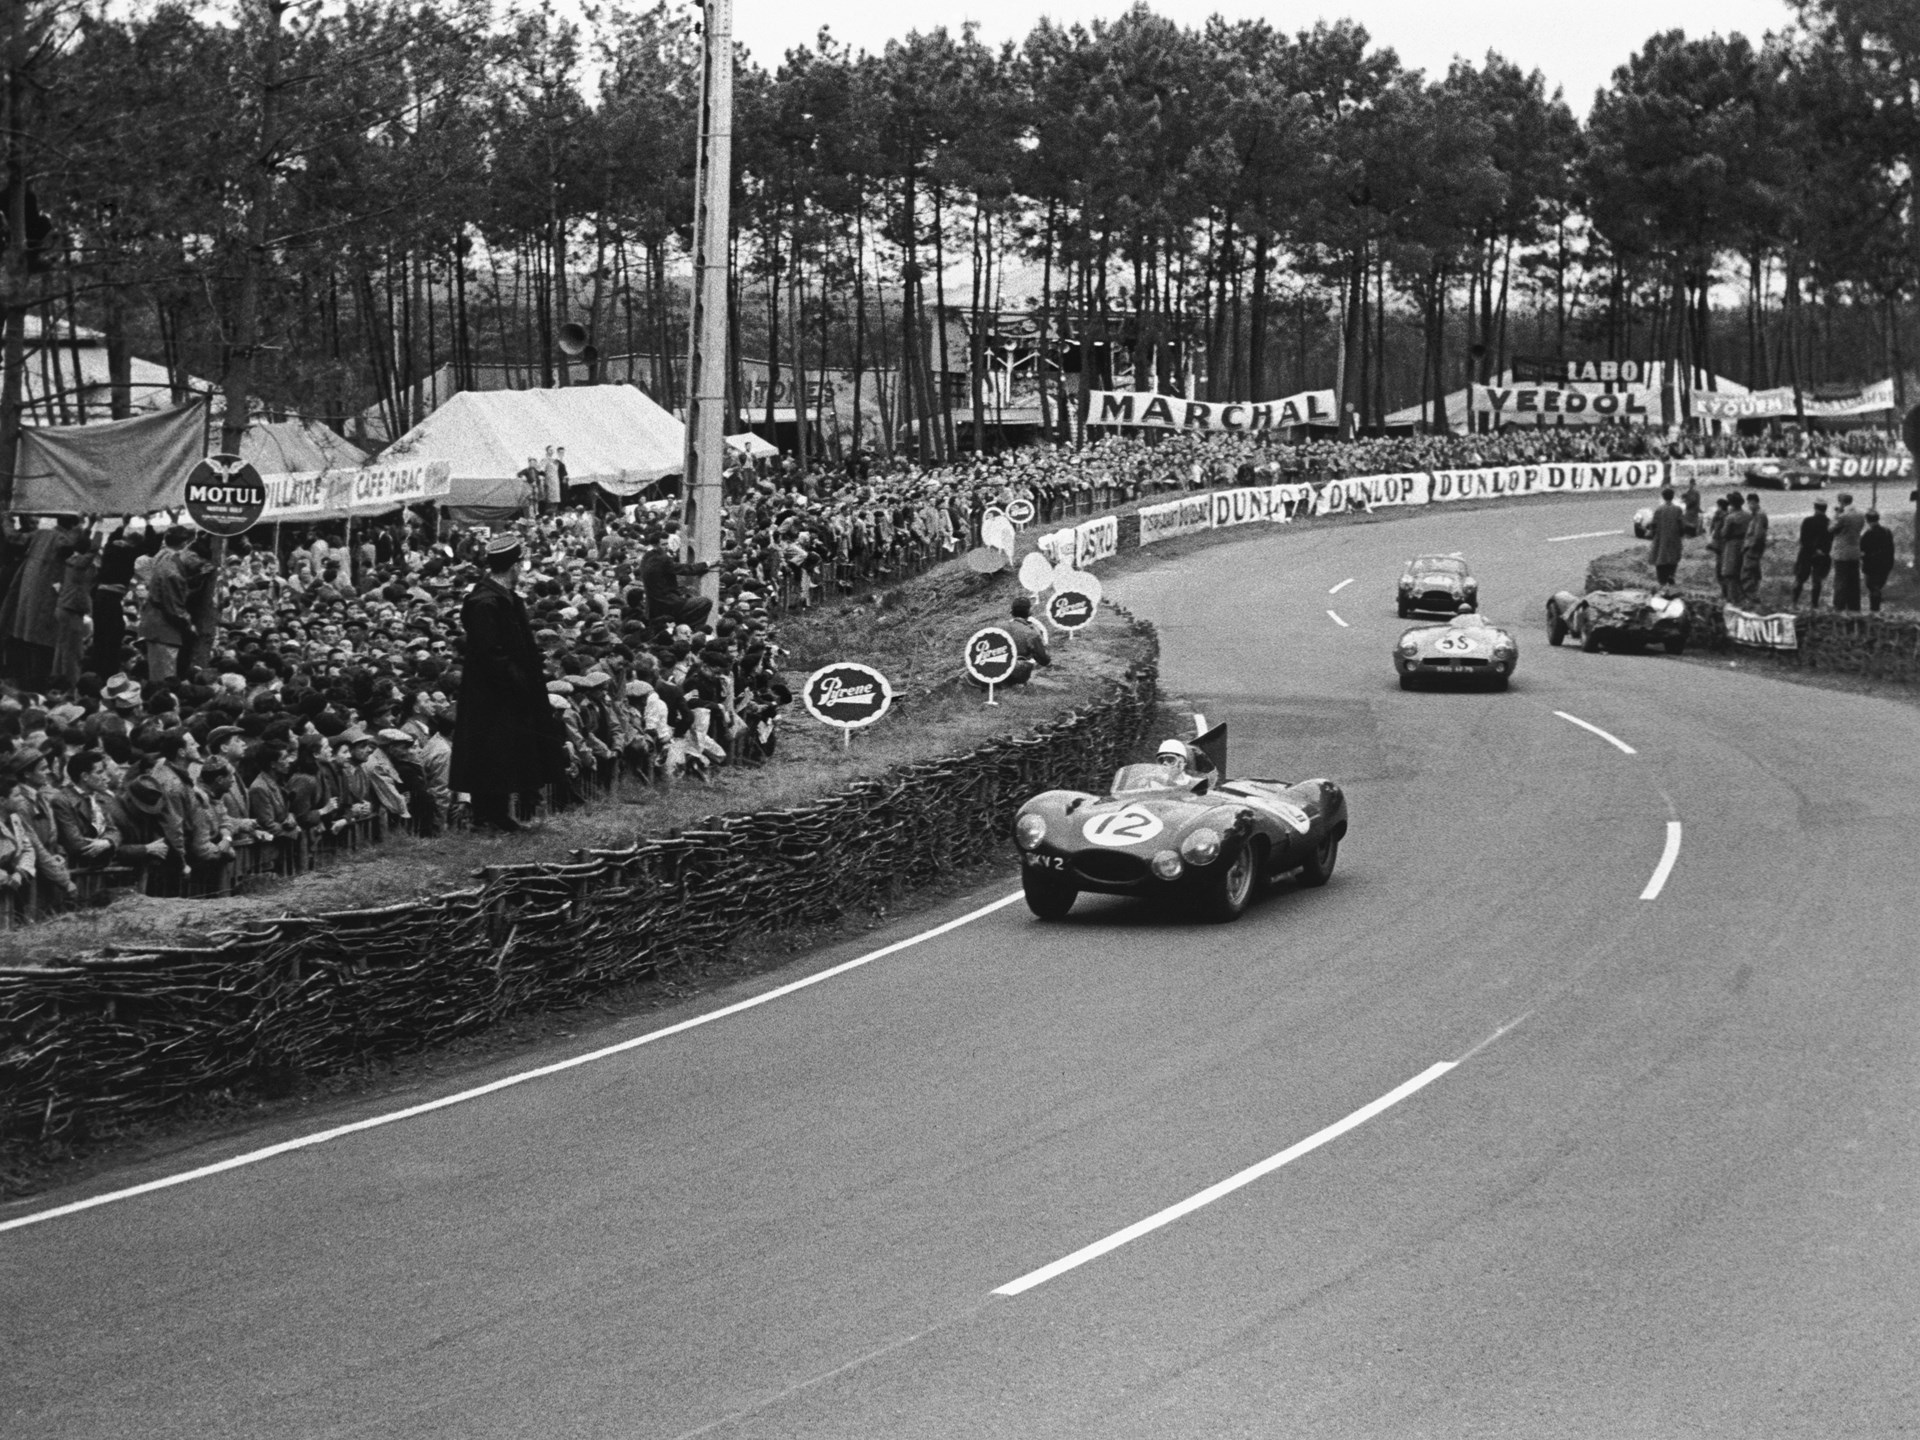 OKV 2 at speed during the 1954 24 Hours of Le Mans.